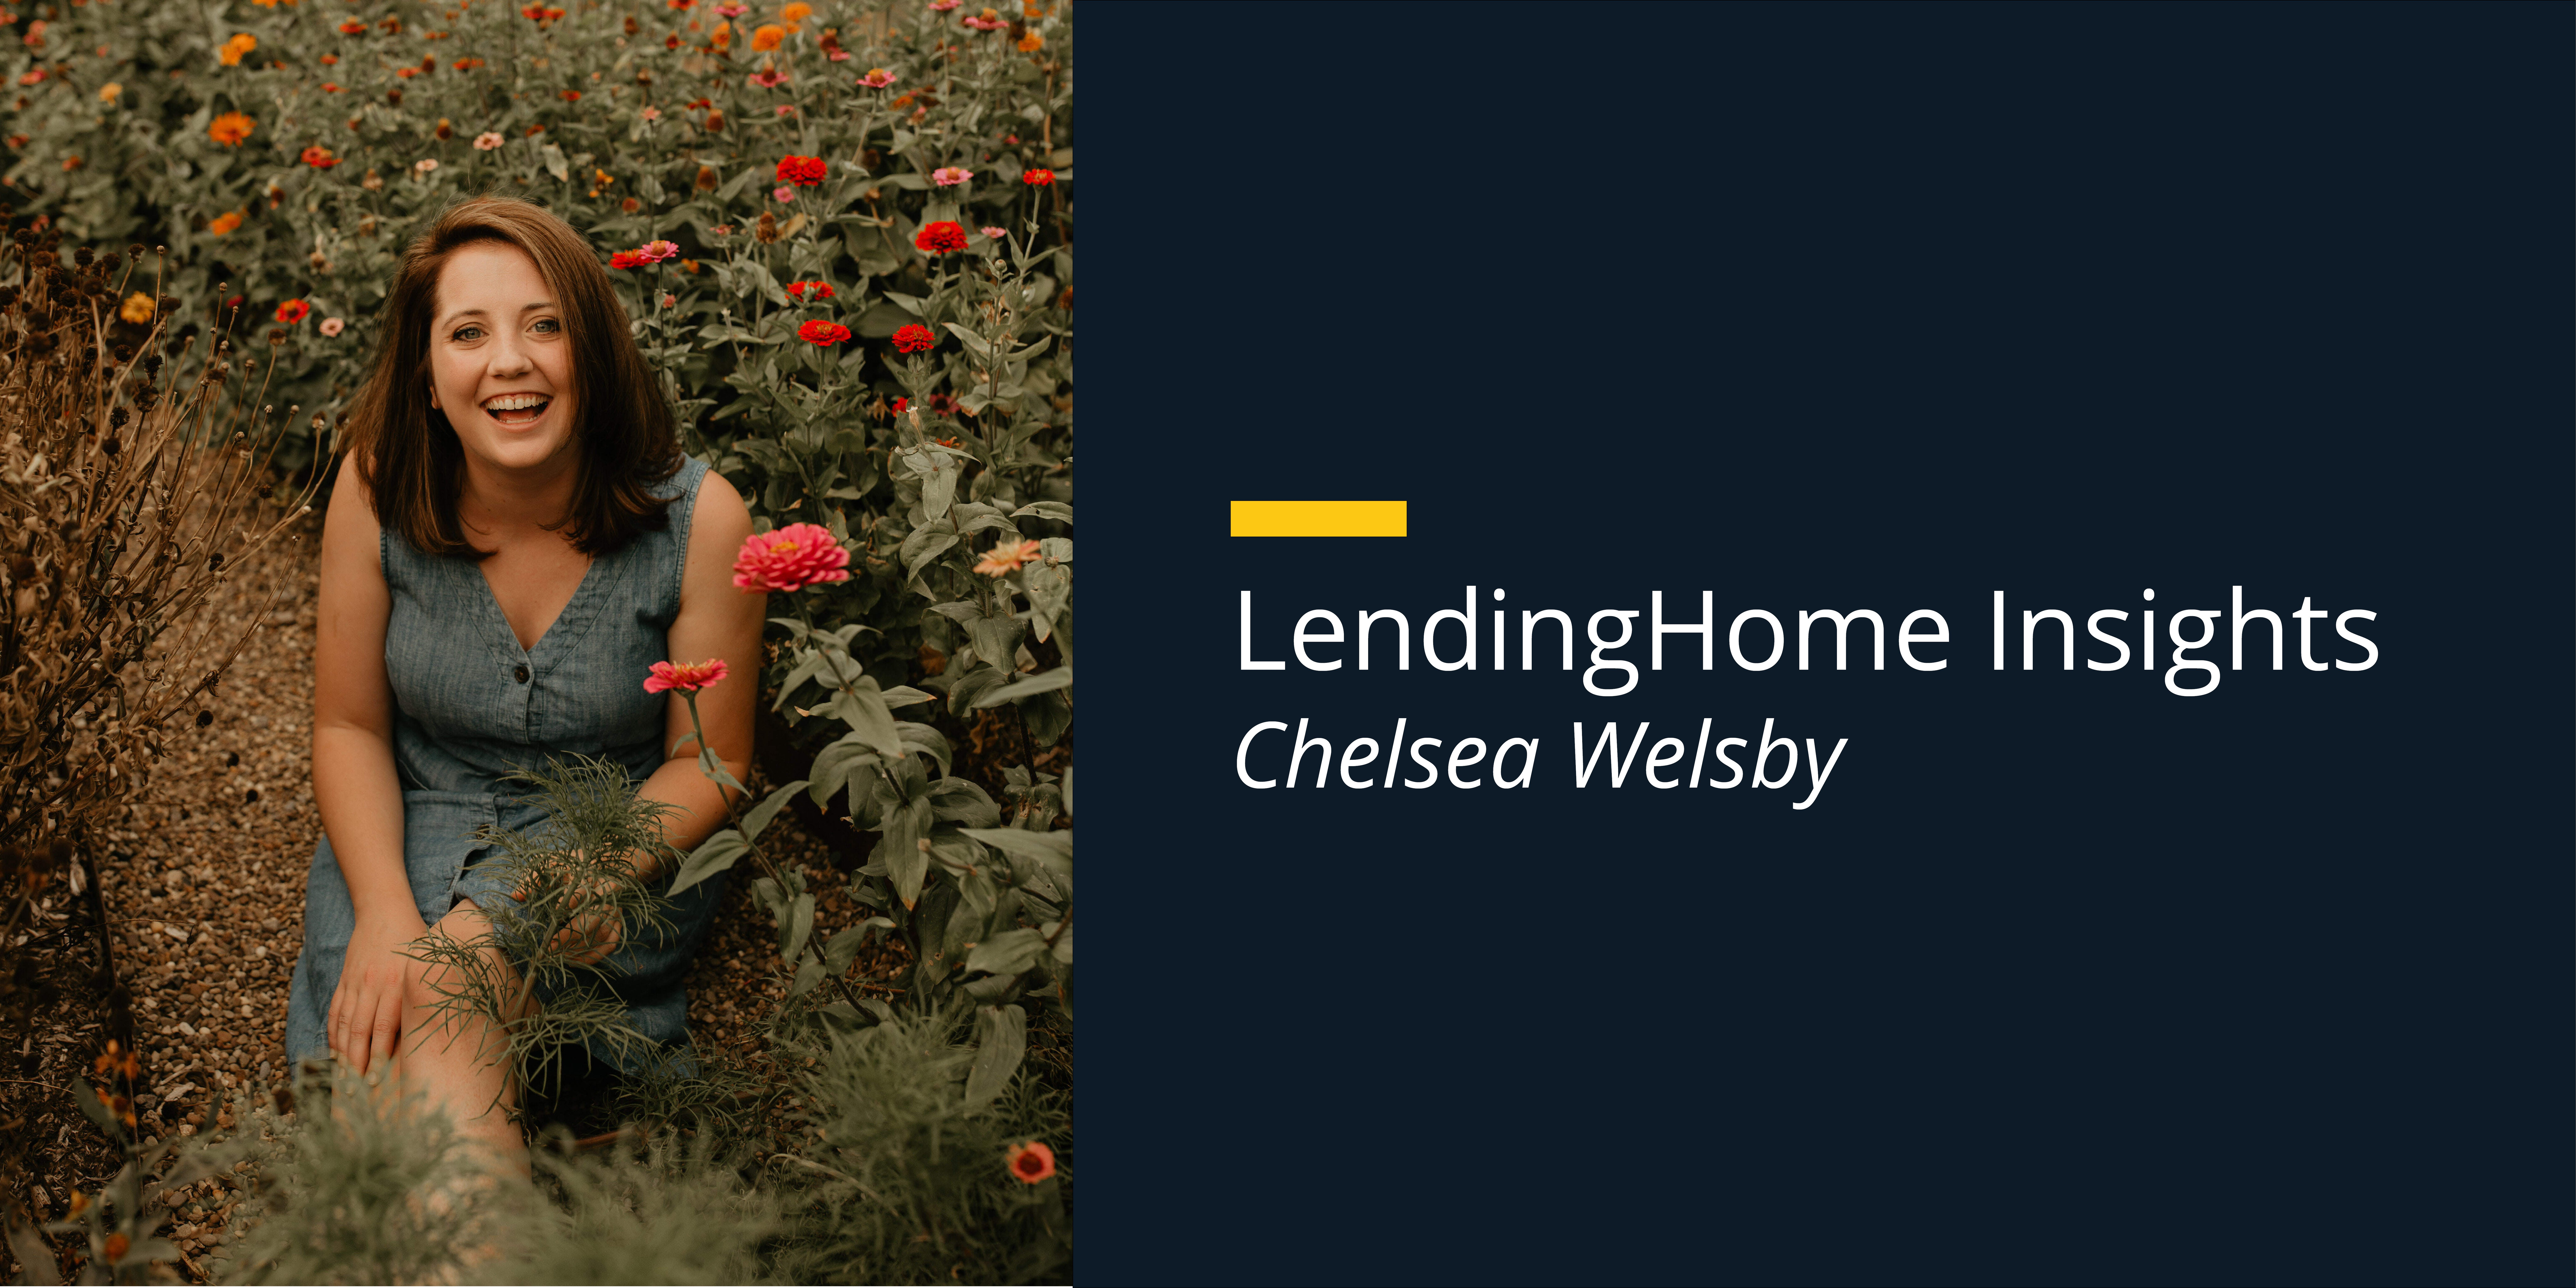 Employee Highlights: Chelsea Welsby